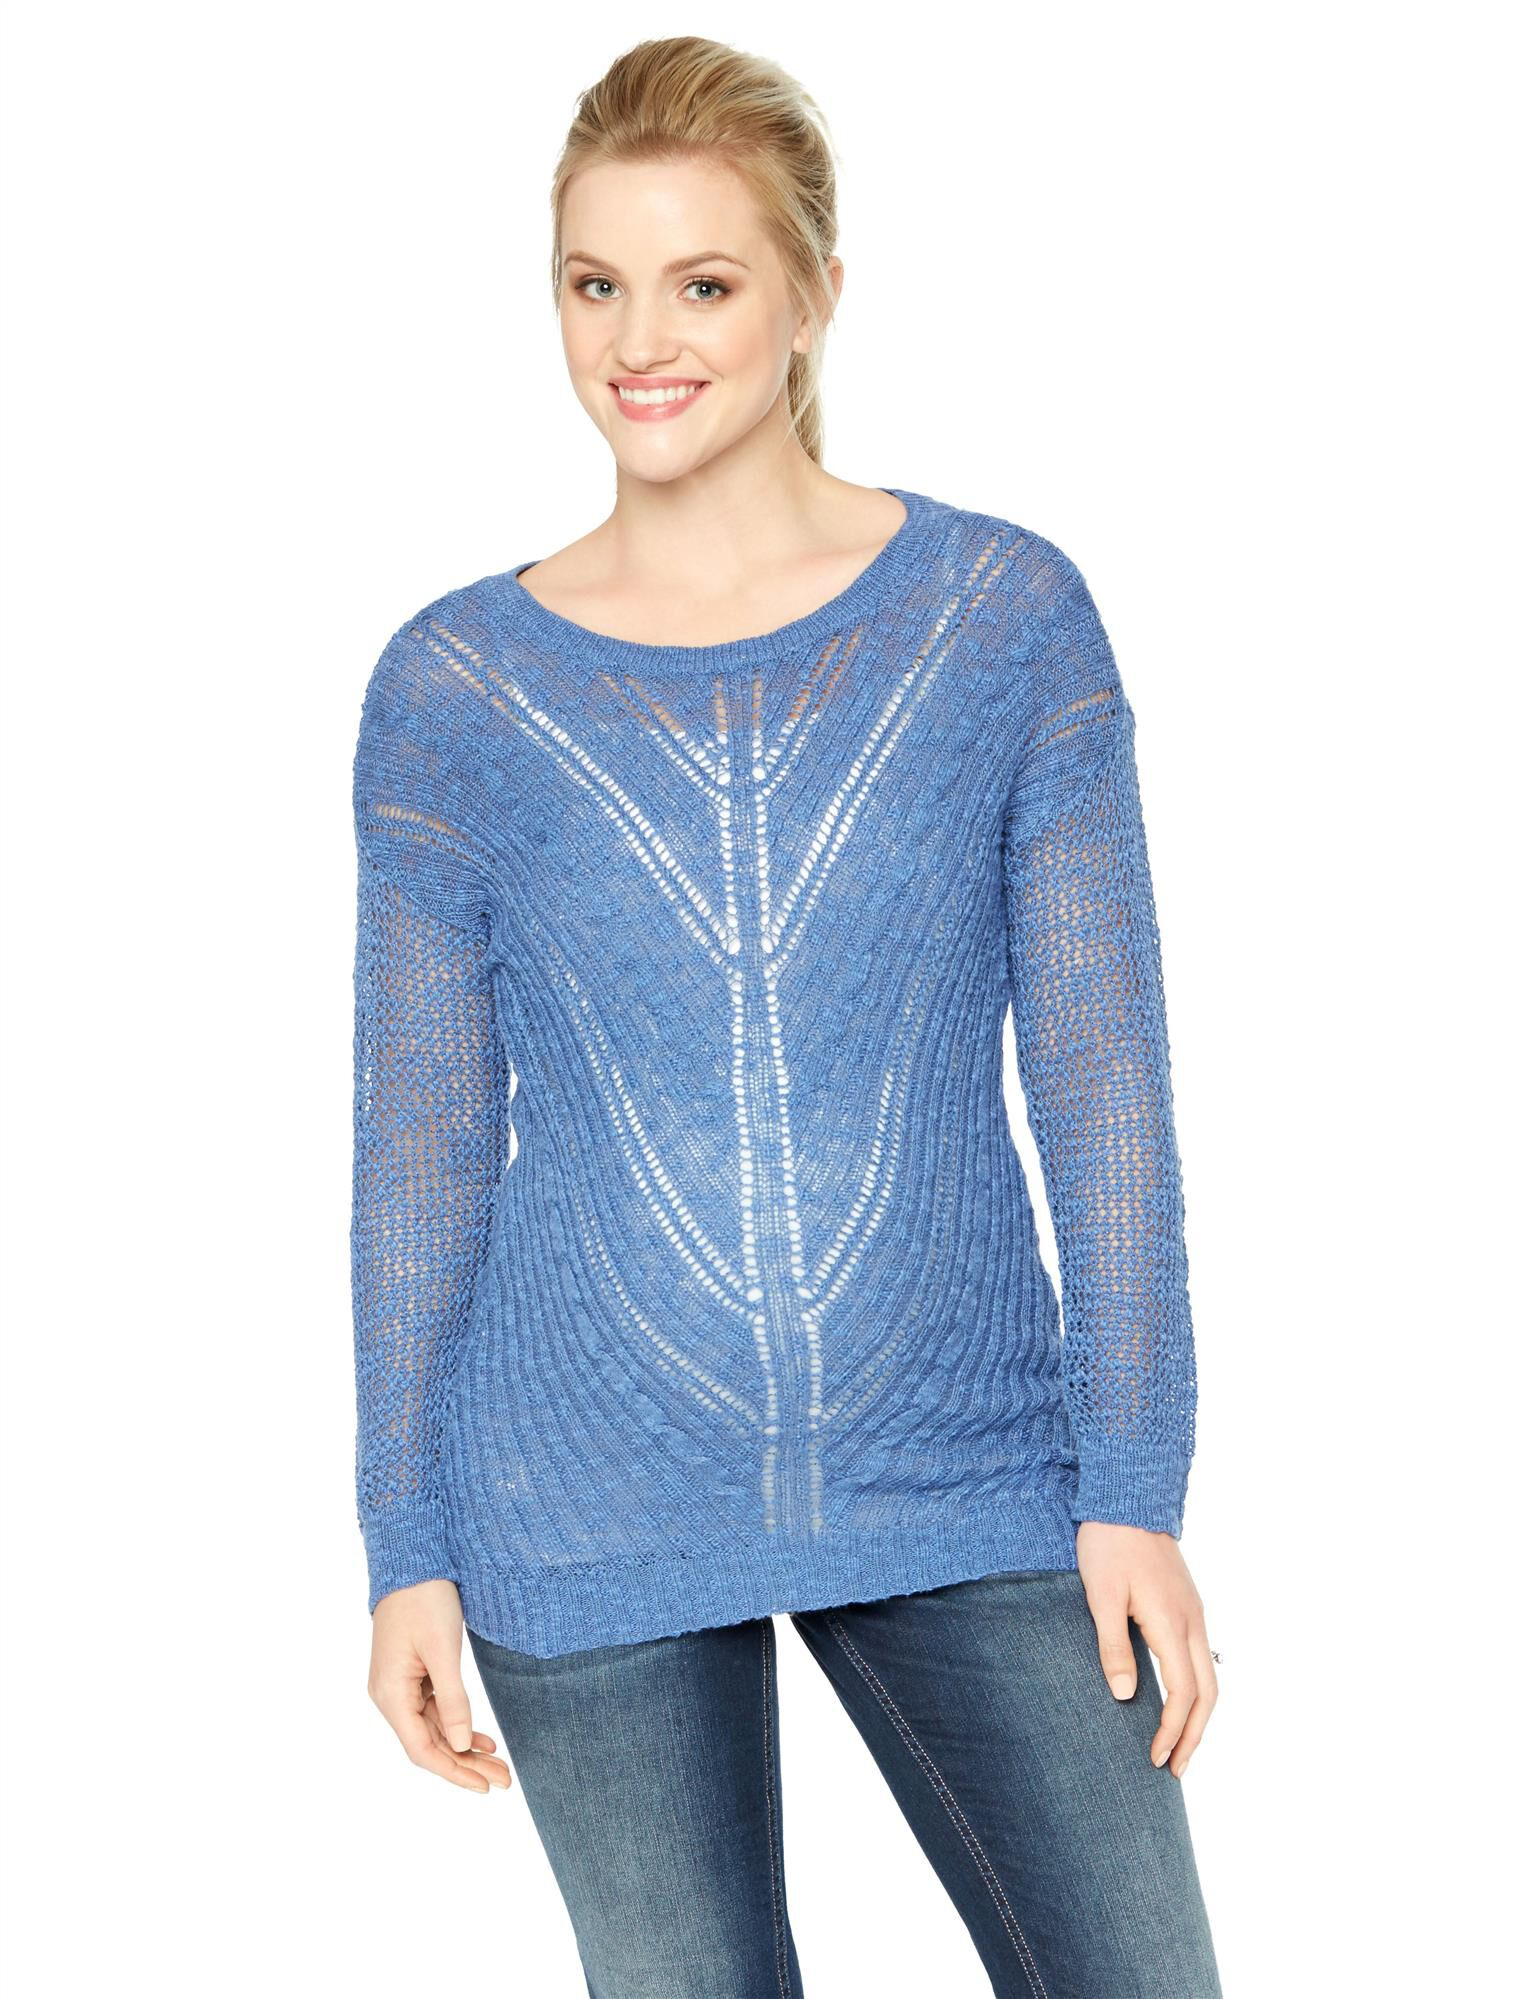 Pointelle Knit Maternity Sweater